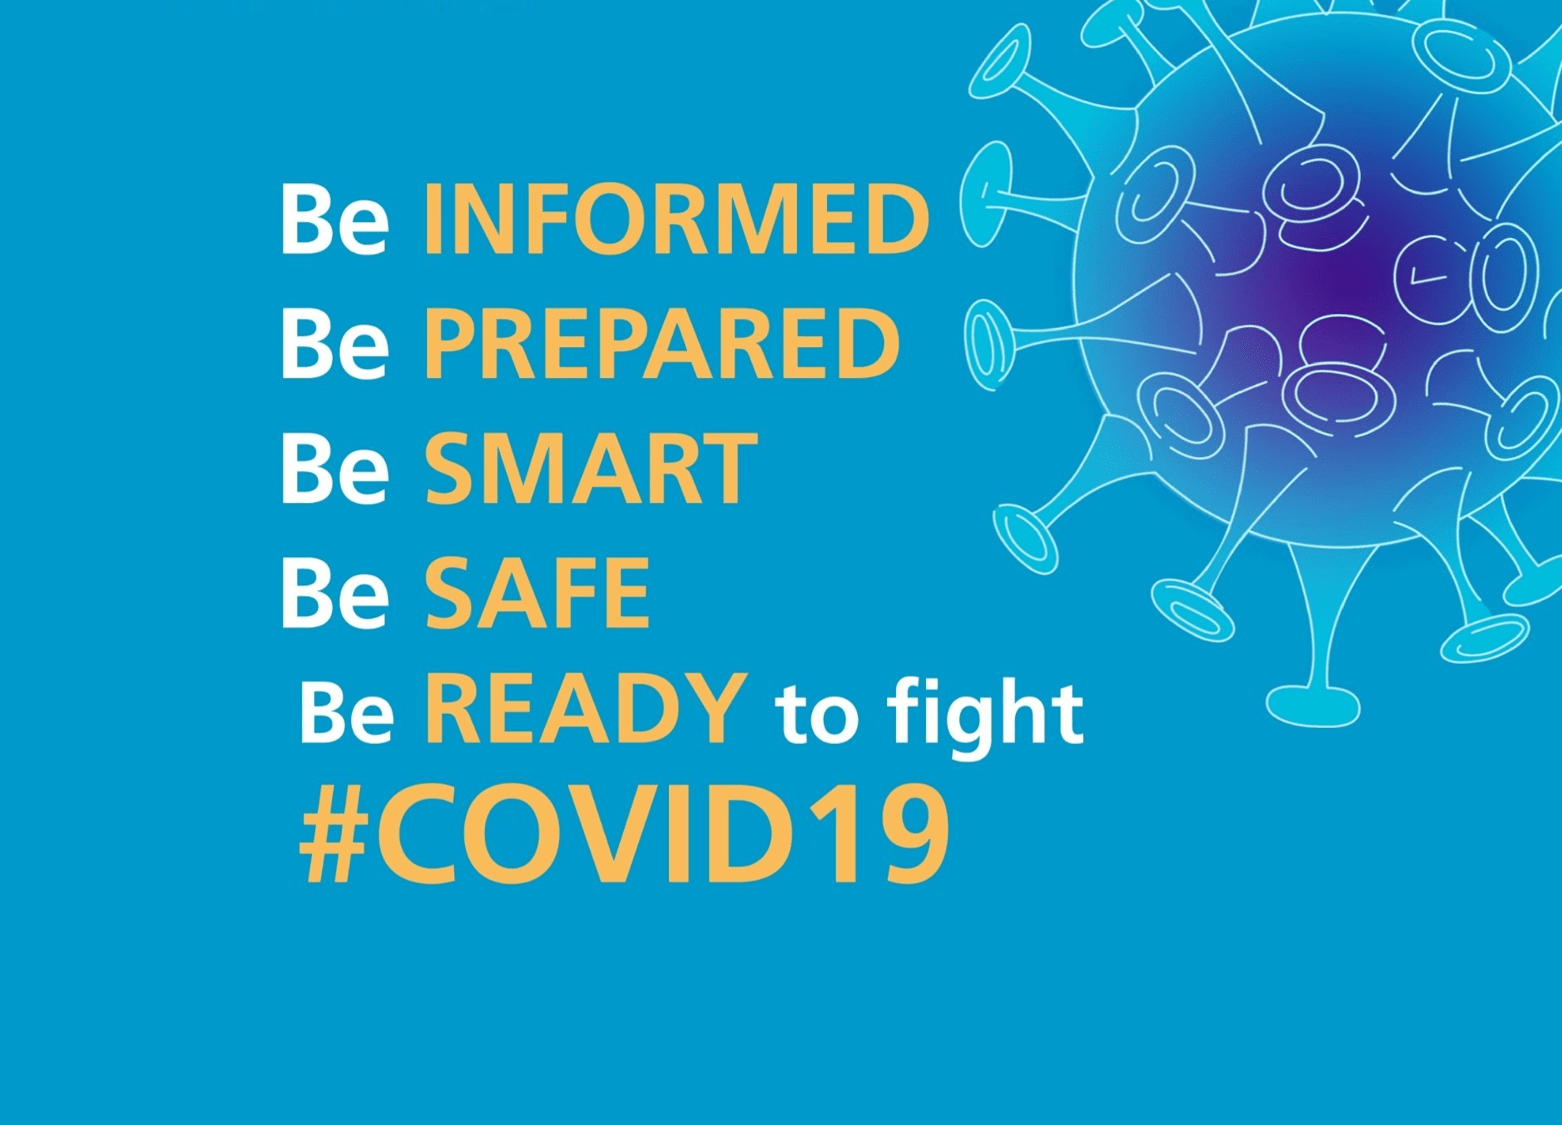 Covid-19 Stay Safe